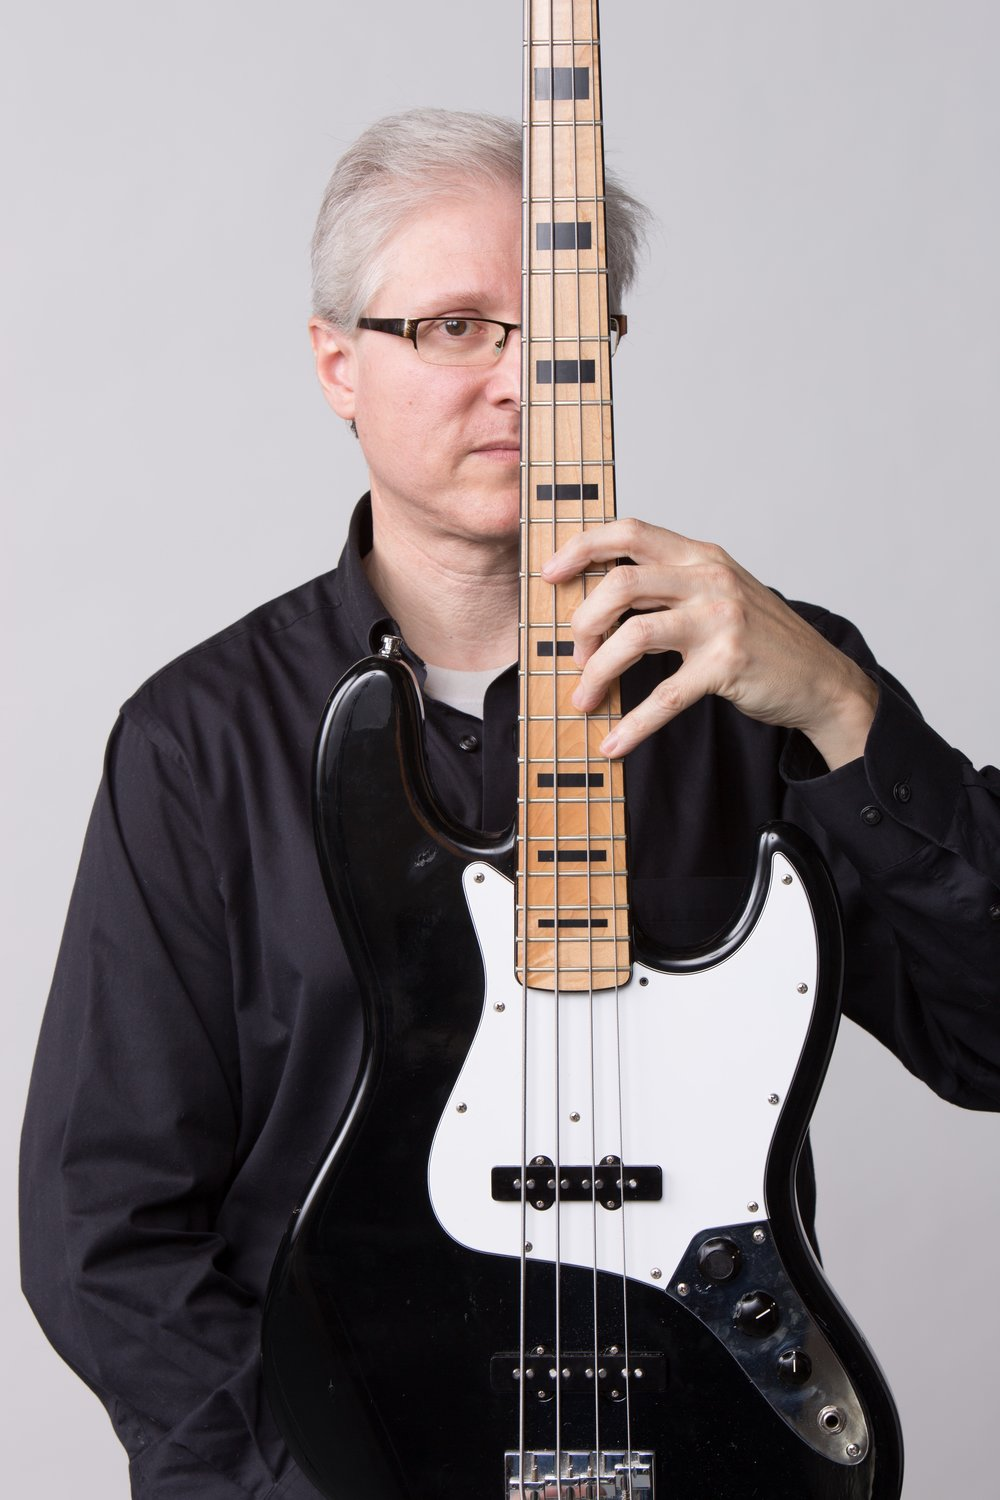 MIKEMike Bitts has been a member of NakedEye since 2014. Besides being a top-notch bassist, he's also an arranger with an ear for the NakedEye sound. -